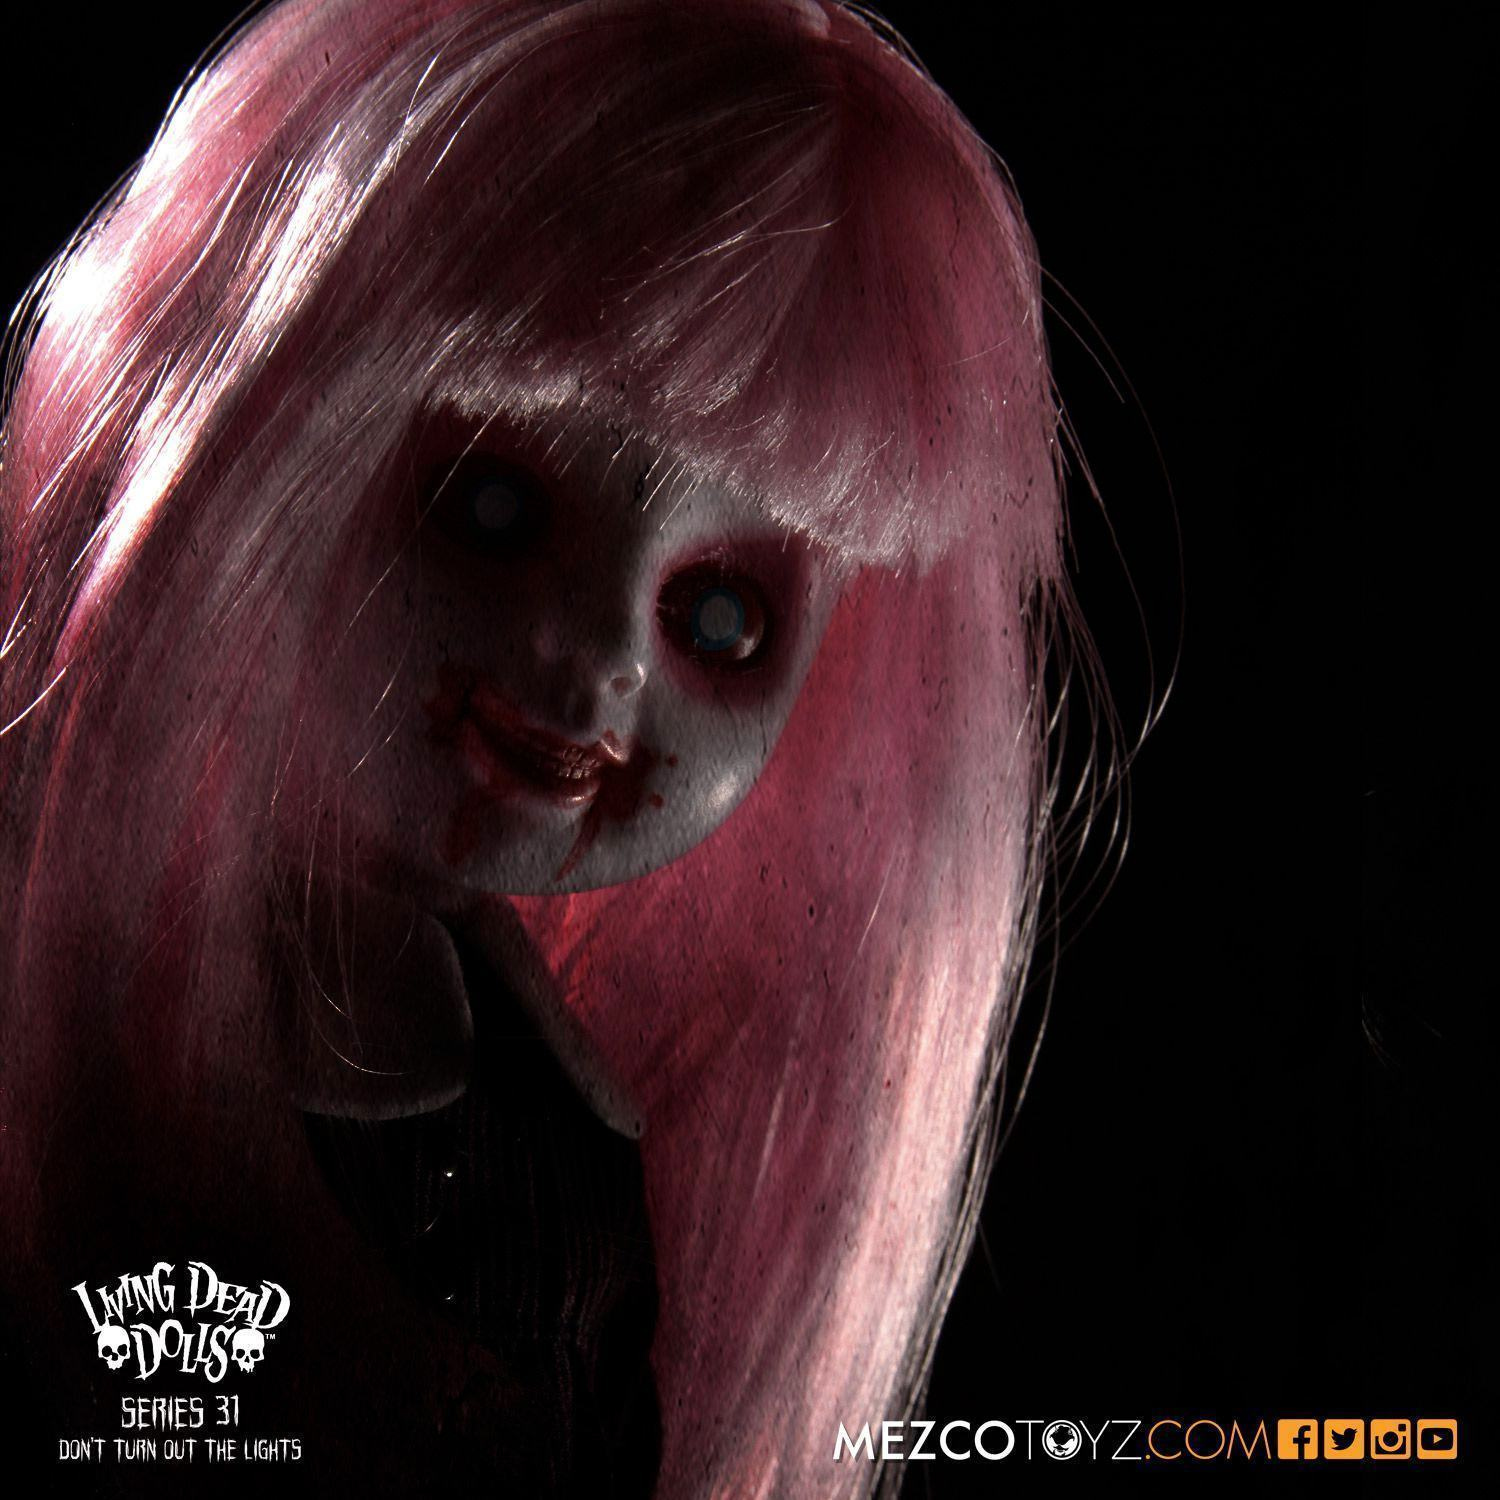 Bonecas-The-Living-Dead-Dolls-Series-31-Dont-Turn-Out-The-Lights-11